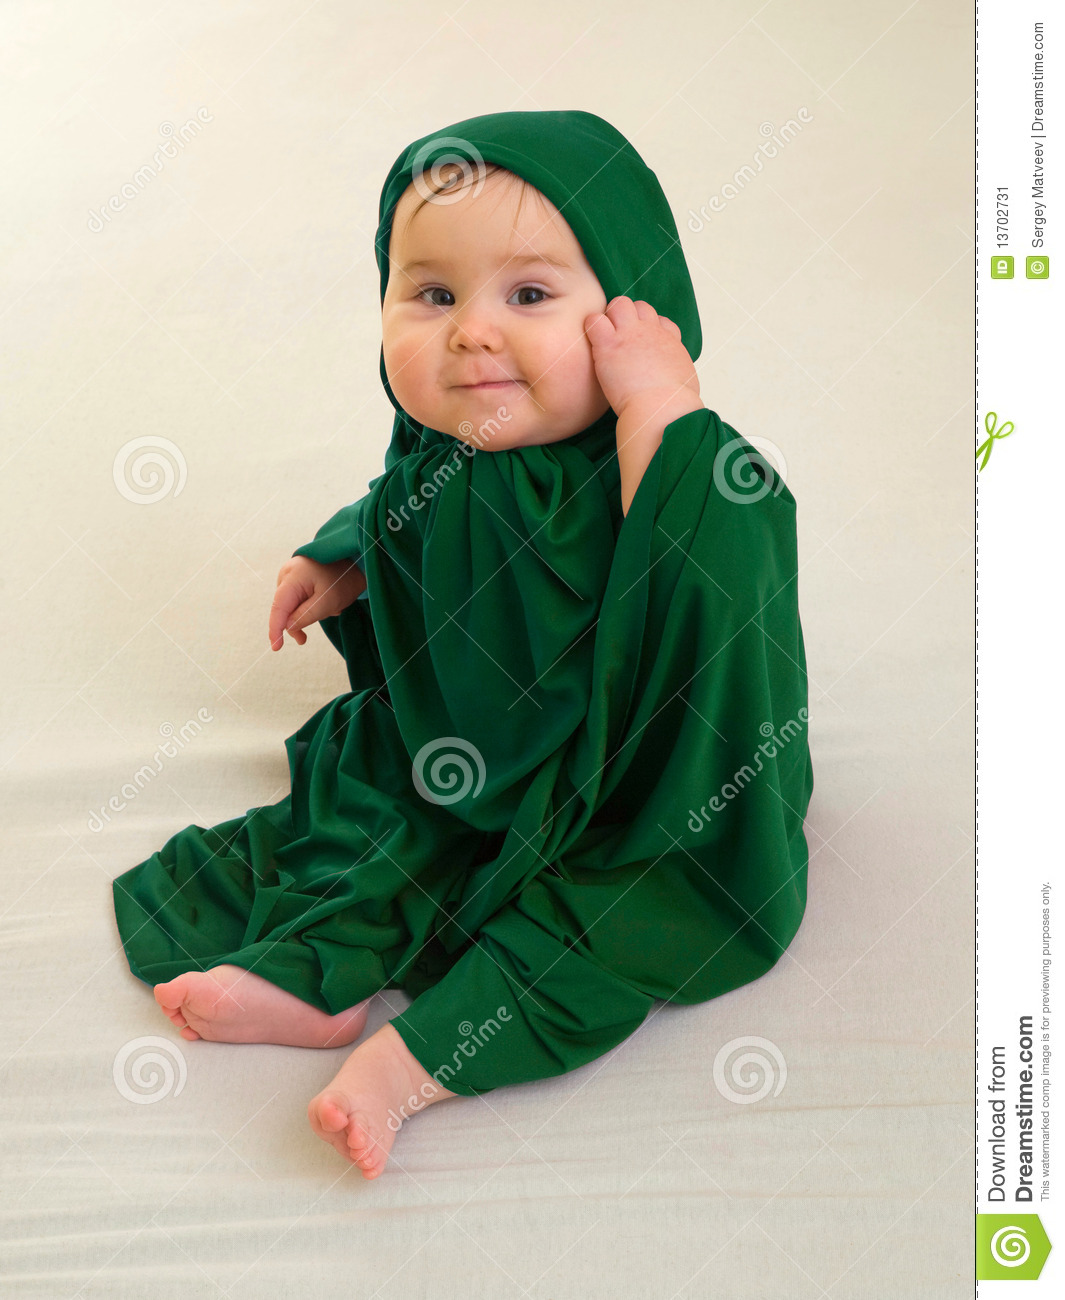 2ea59adc7b99 Happy Baby Girl In Green Muslim Dress Stock Image - Image of ...